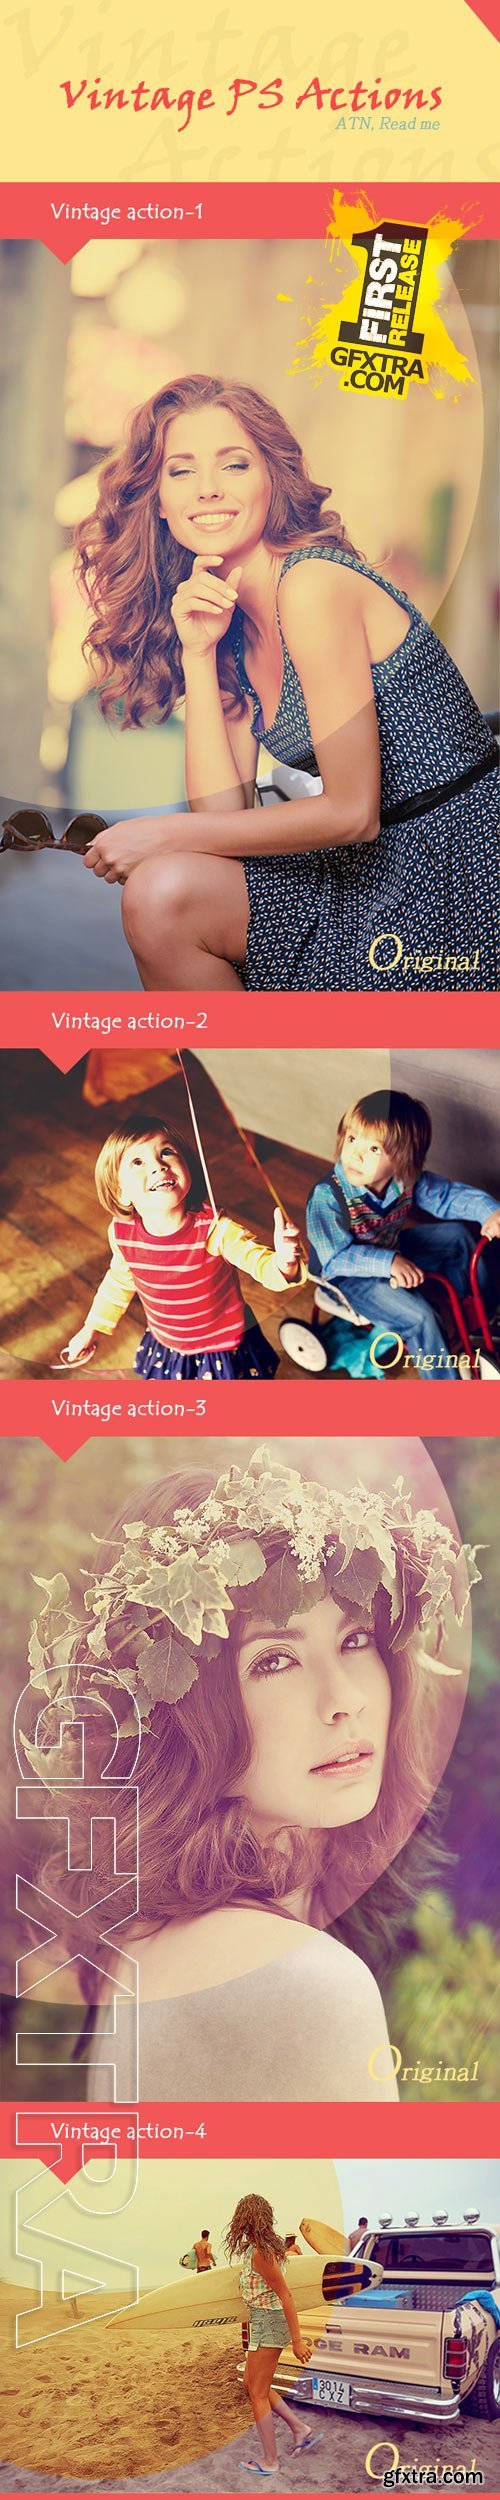 GraphicRiver - Vintage PS Actions 10 9784259